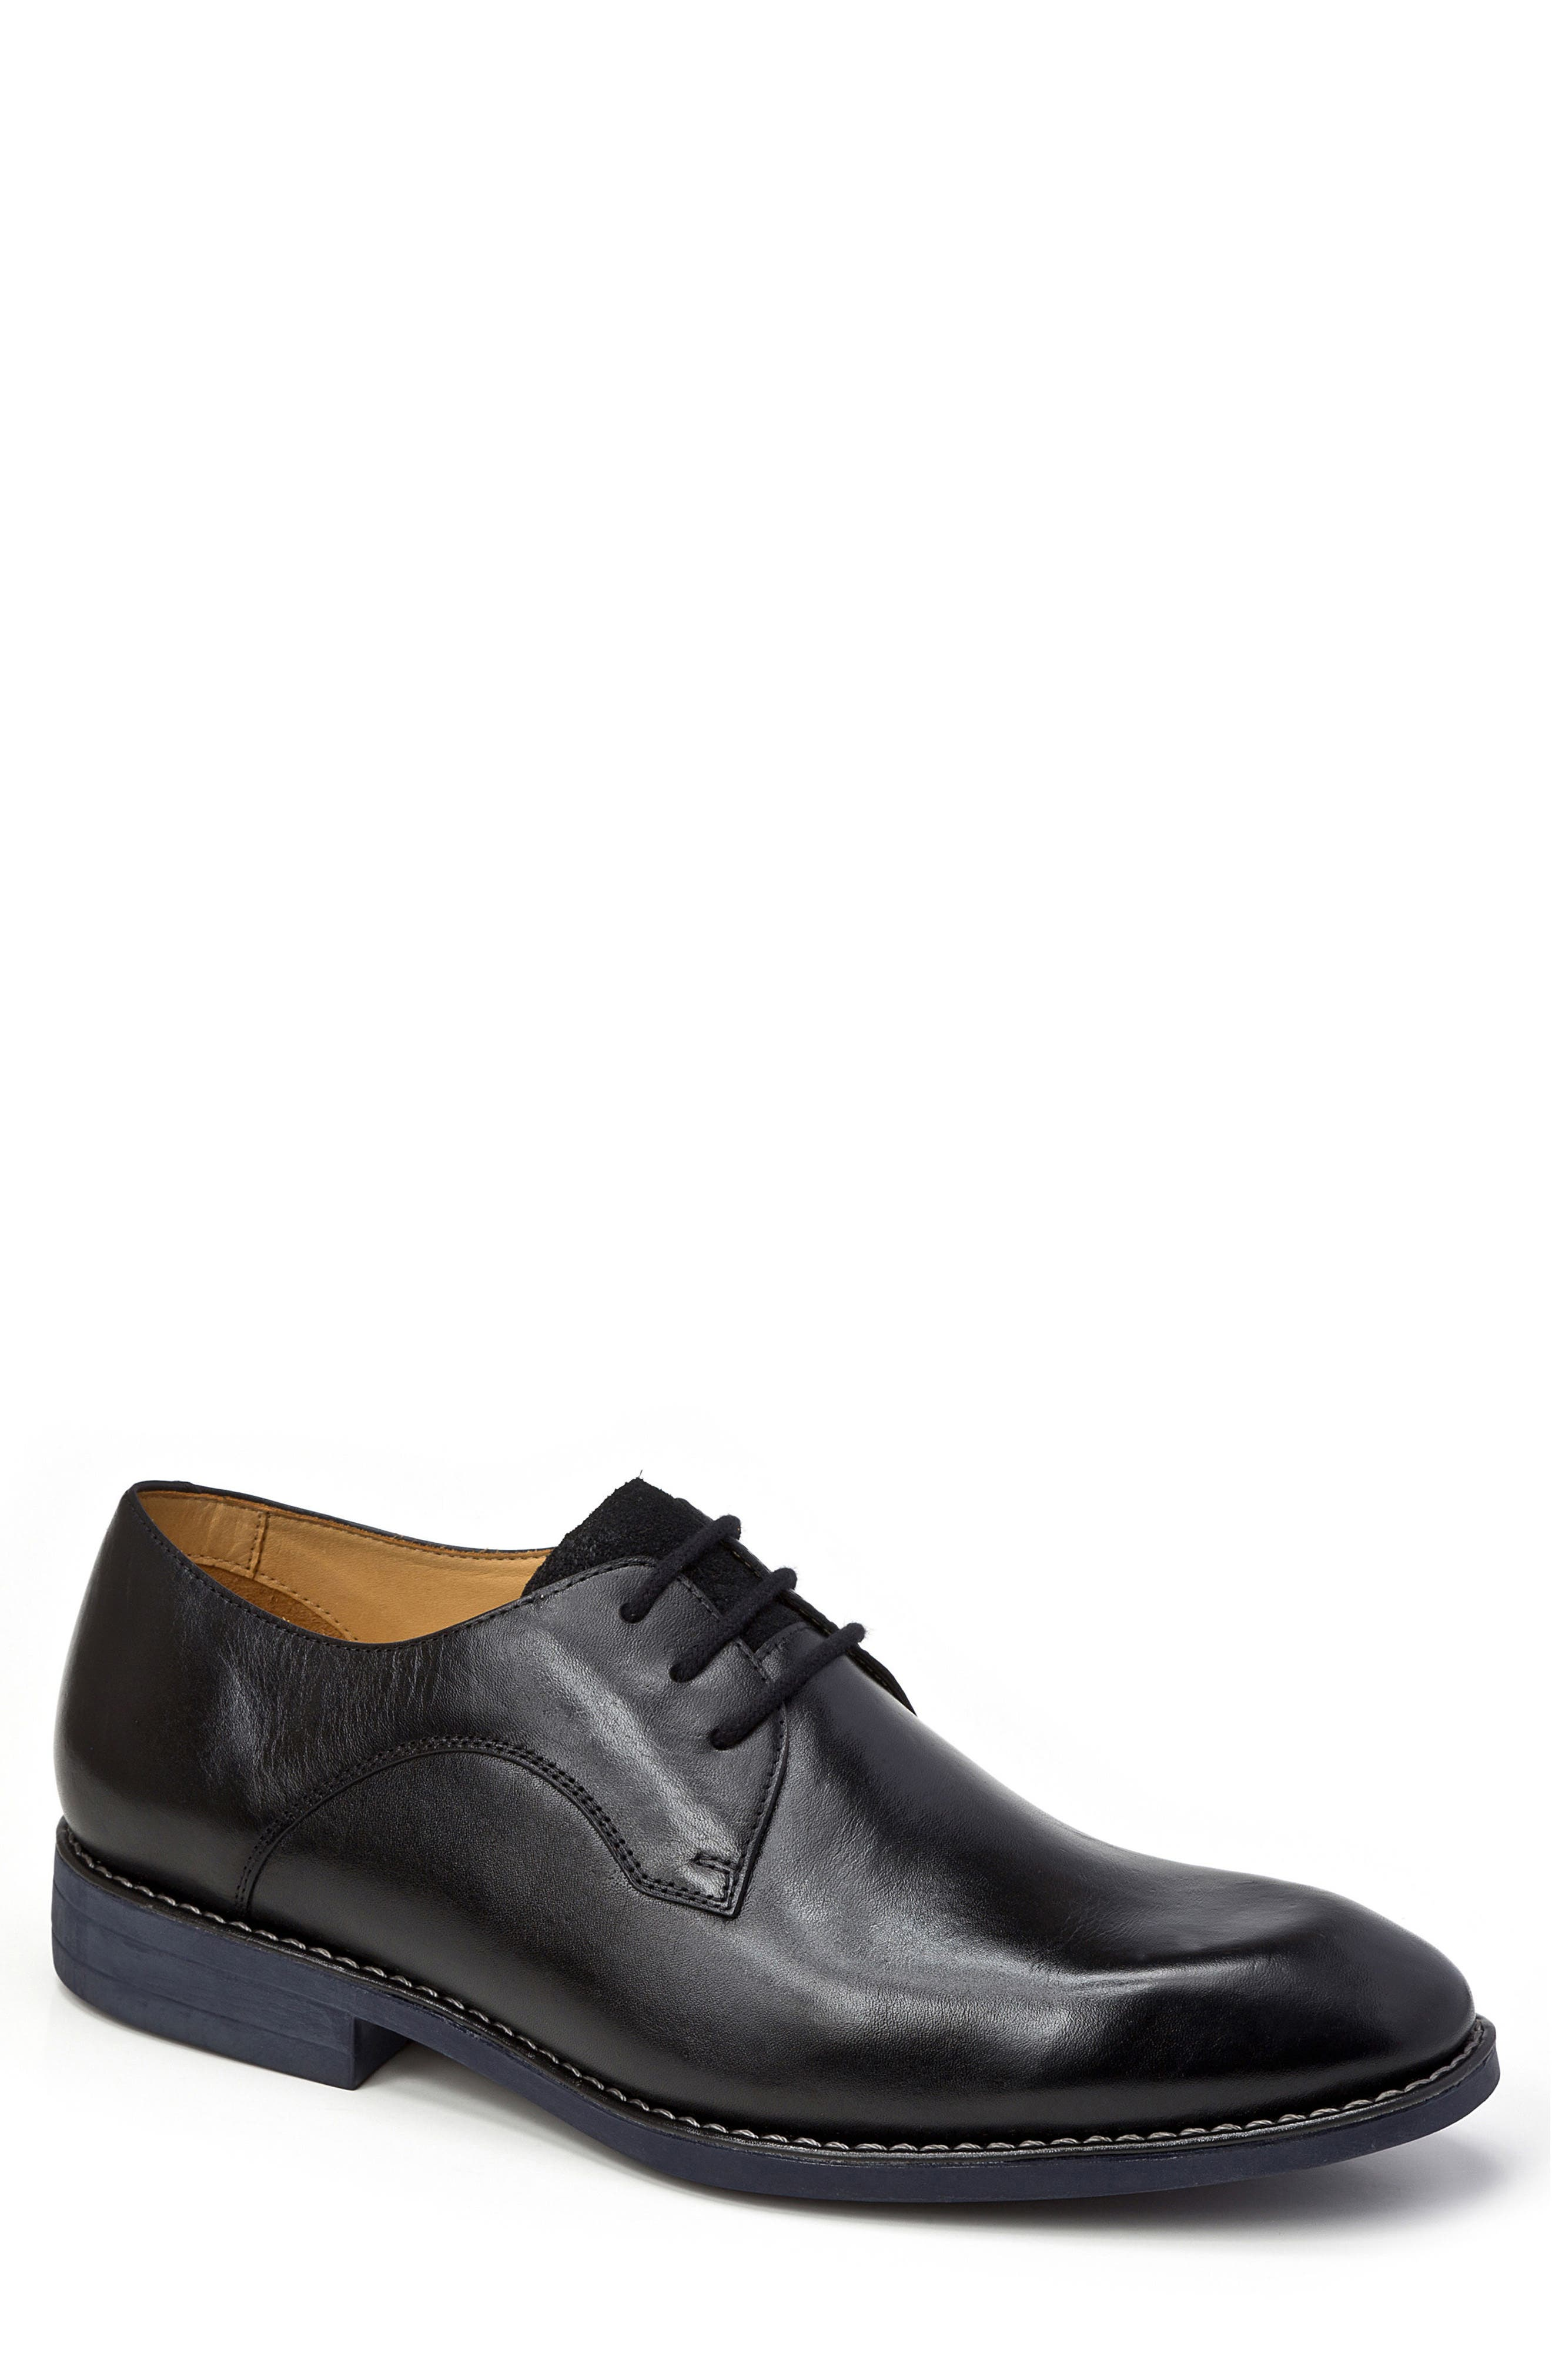 SANDRO MOSCOLONI, Garret Plain Toe Derby, Main thumbnail 1, color, BLACK LEATHER